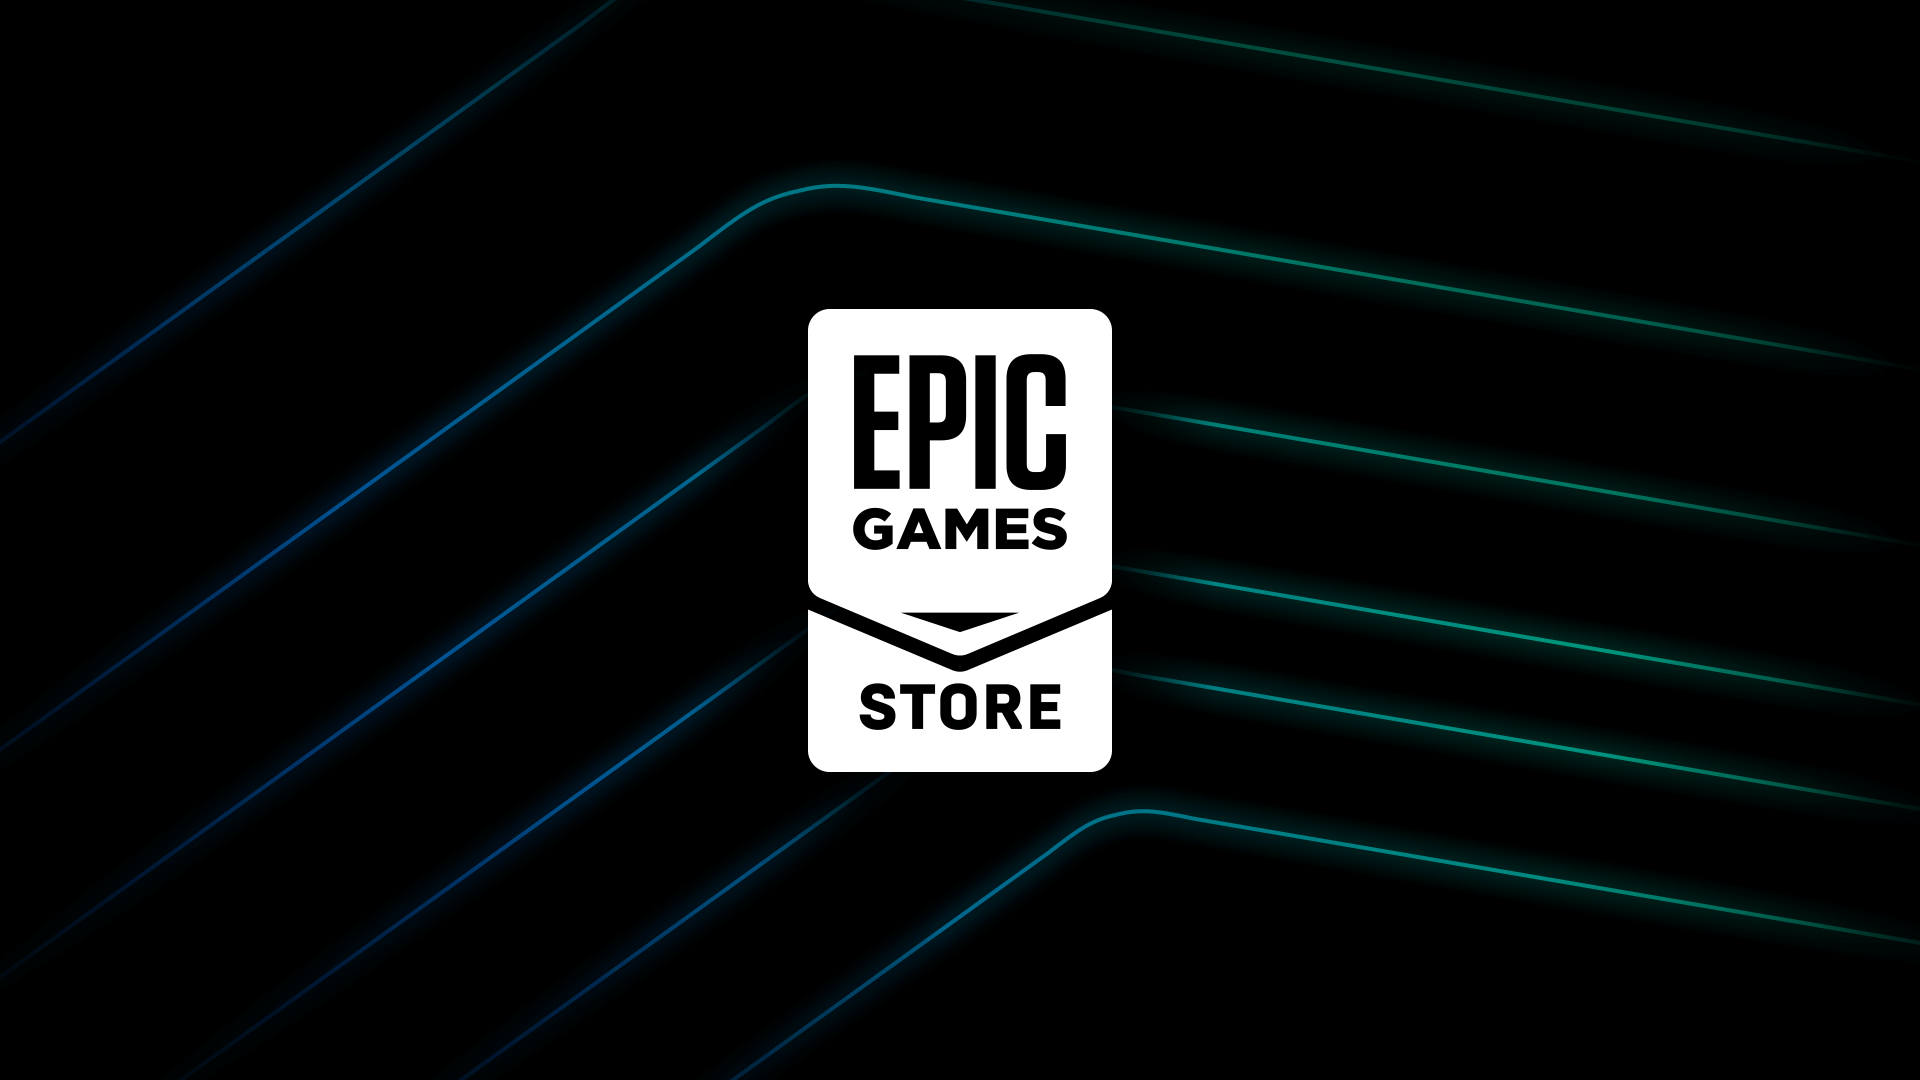 Epic Games Store is beta testing game self-publishing similar to Steam Direct